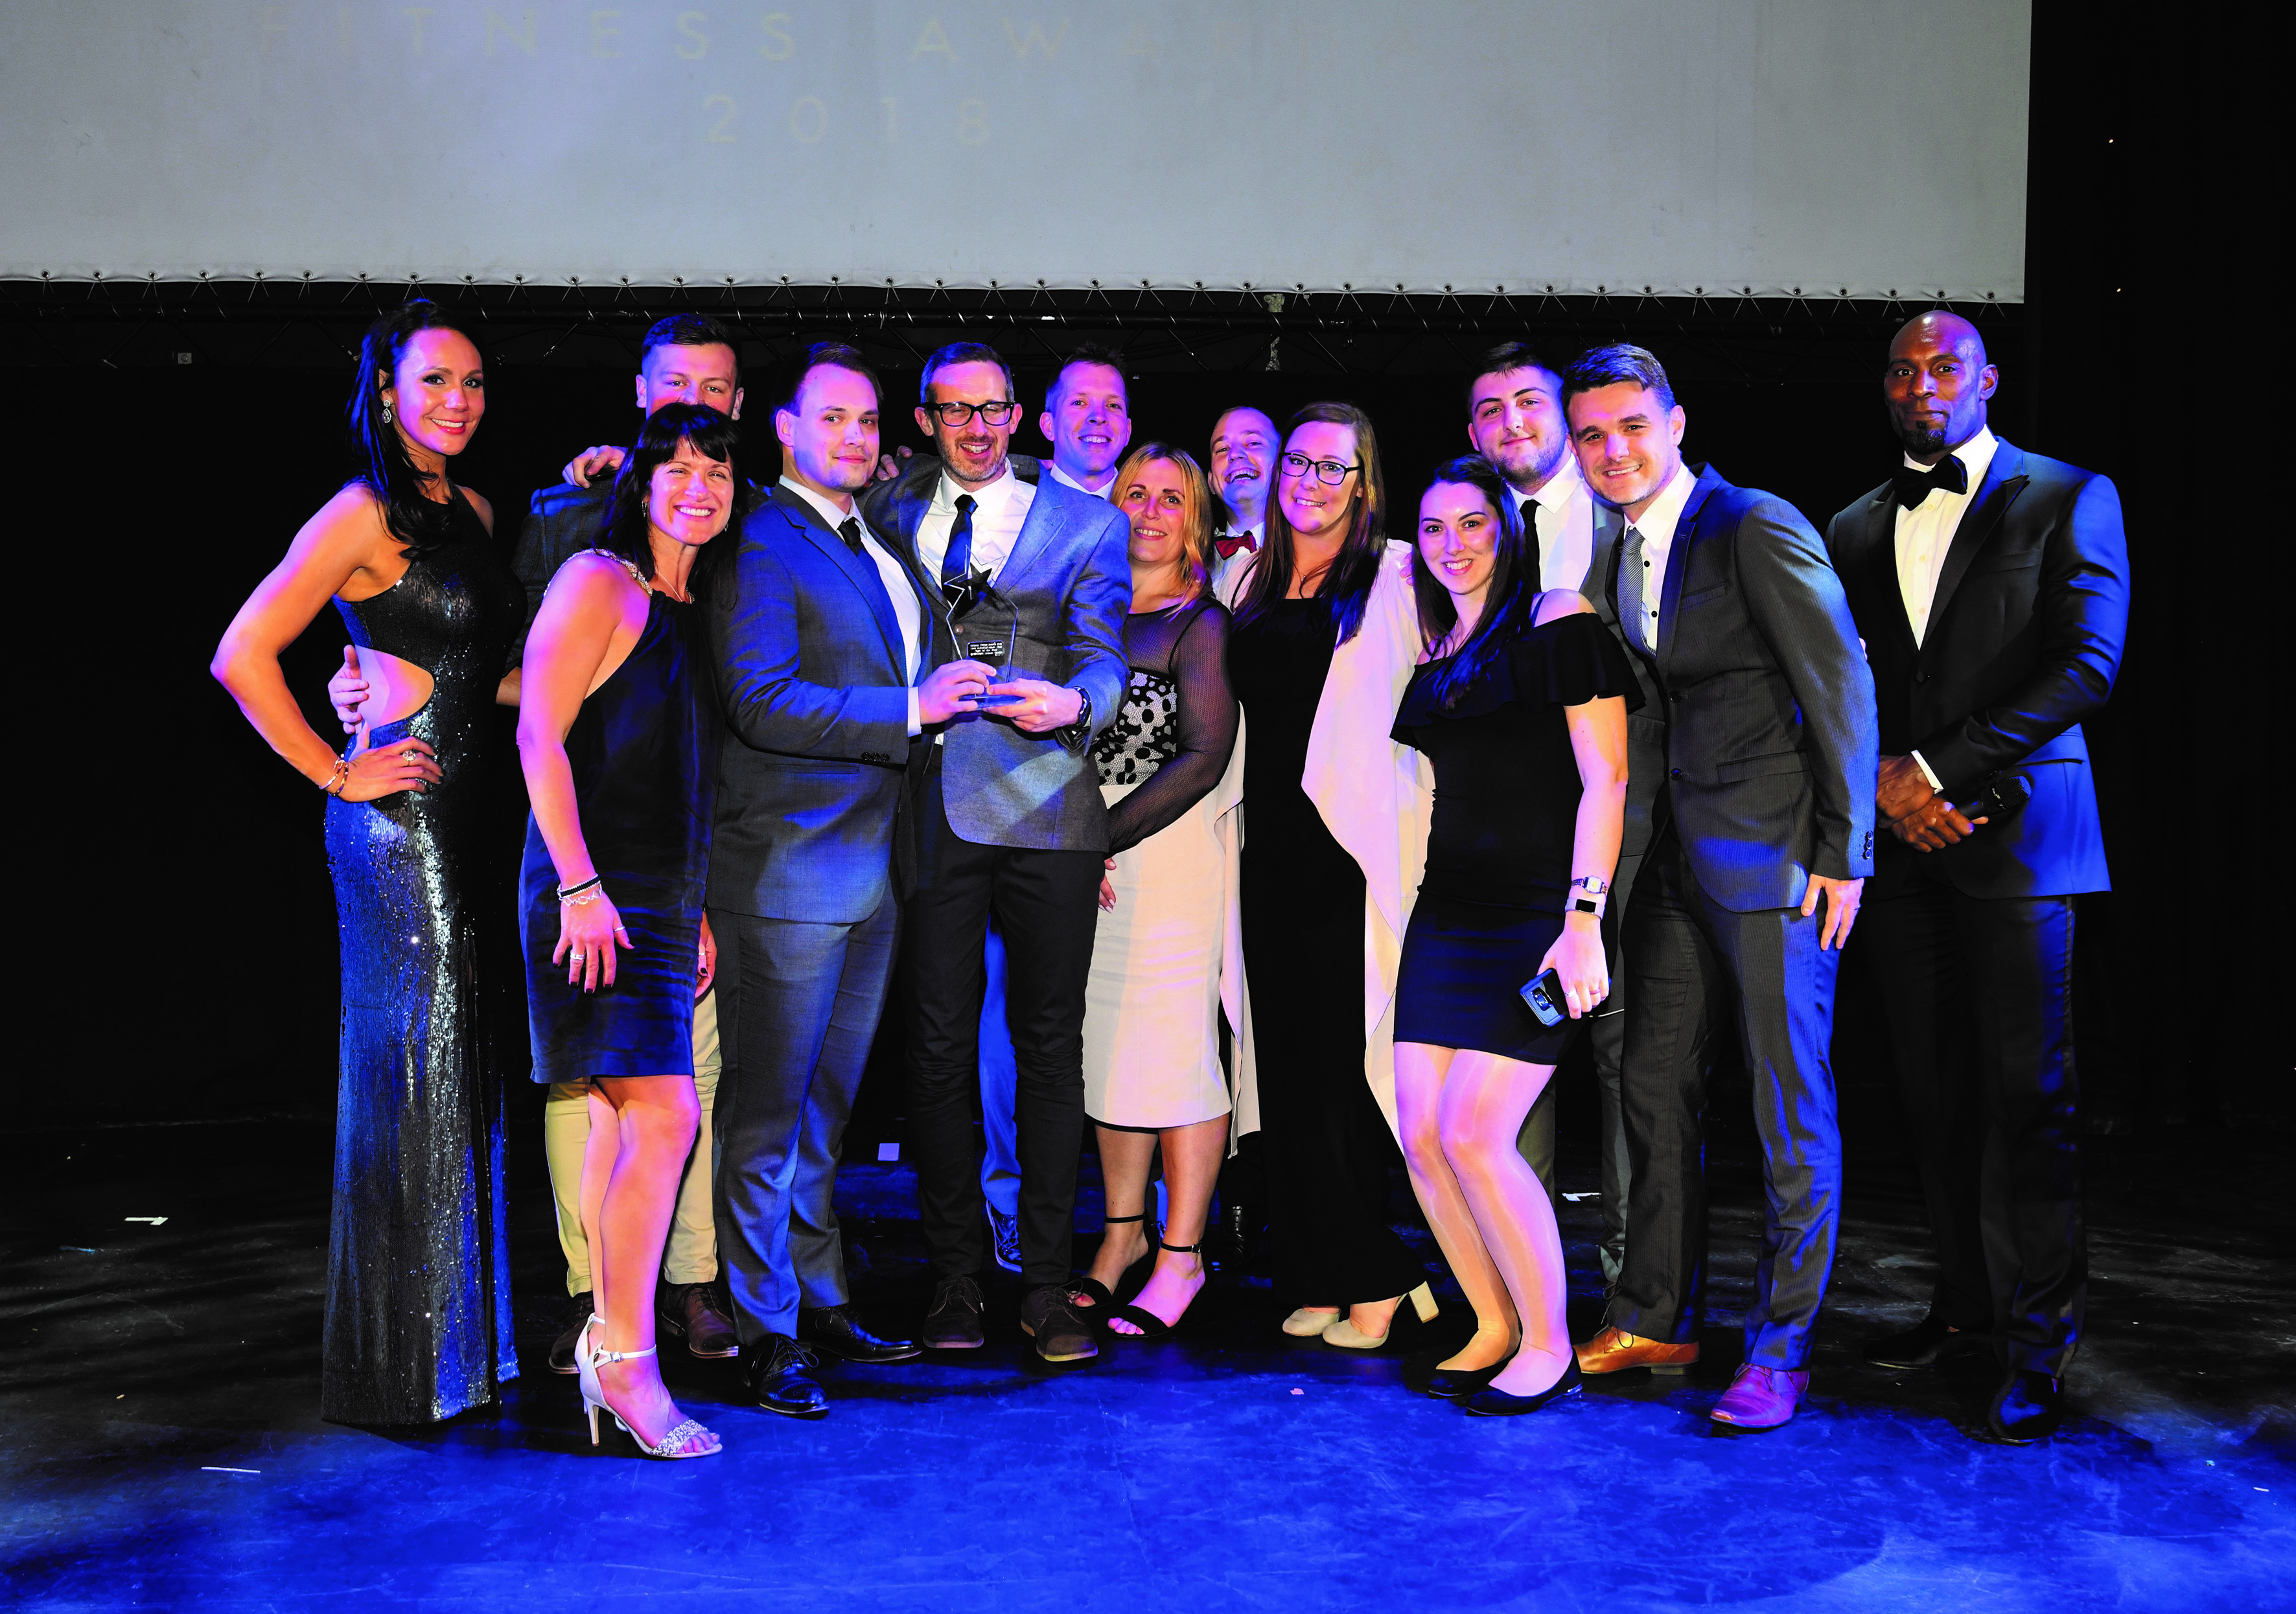 Newmarket Leisure Centre wins national recognition at prestigious fitness industry awards ceremony.